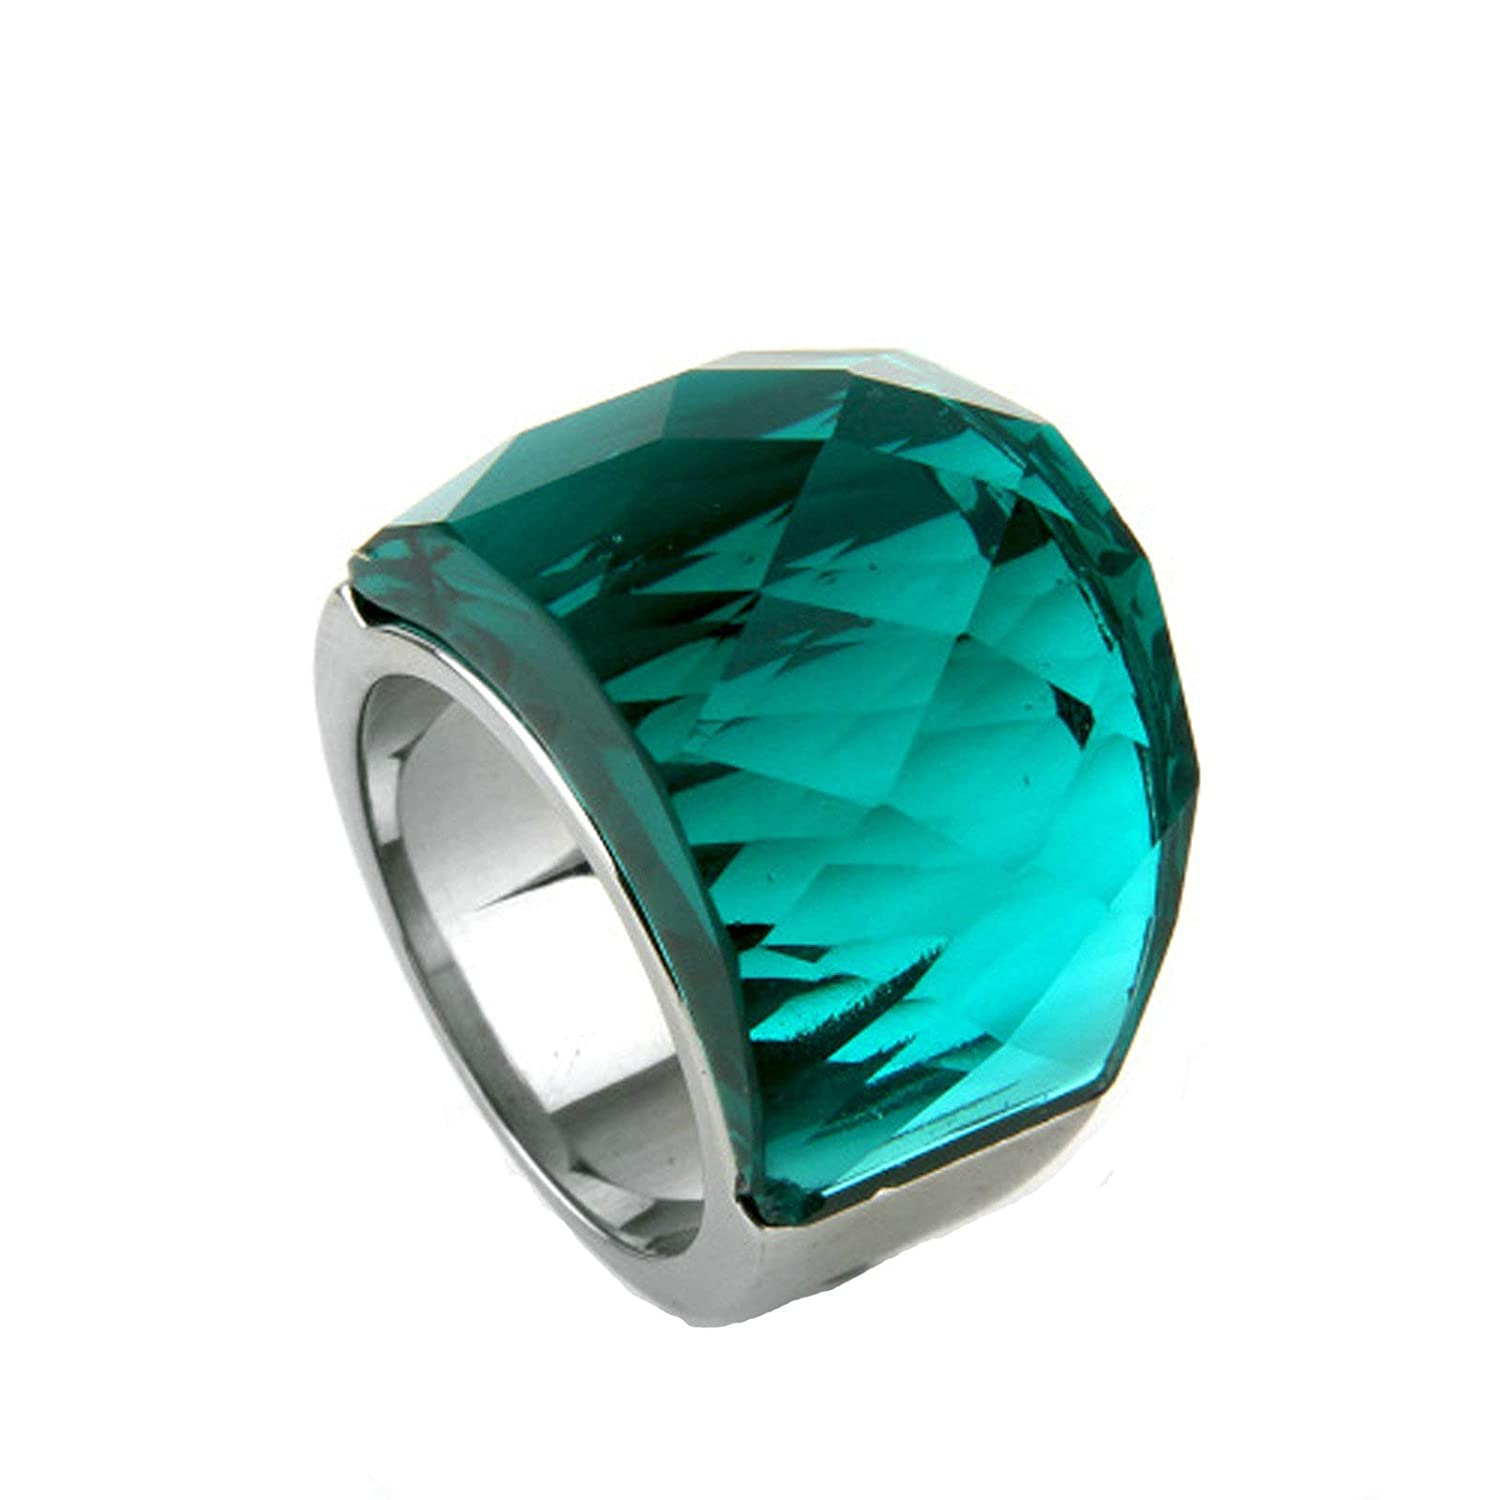 MoAndy Stainless Steel Jewelry Stainless Steel Ring for Female Wedding Ring Round Size 6